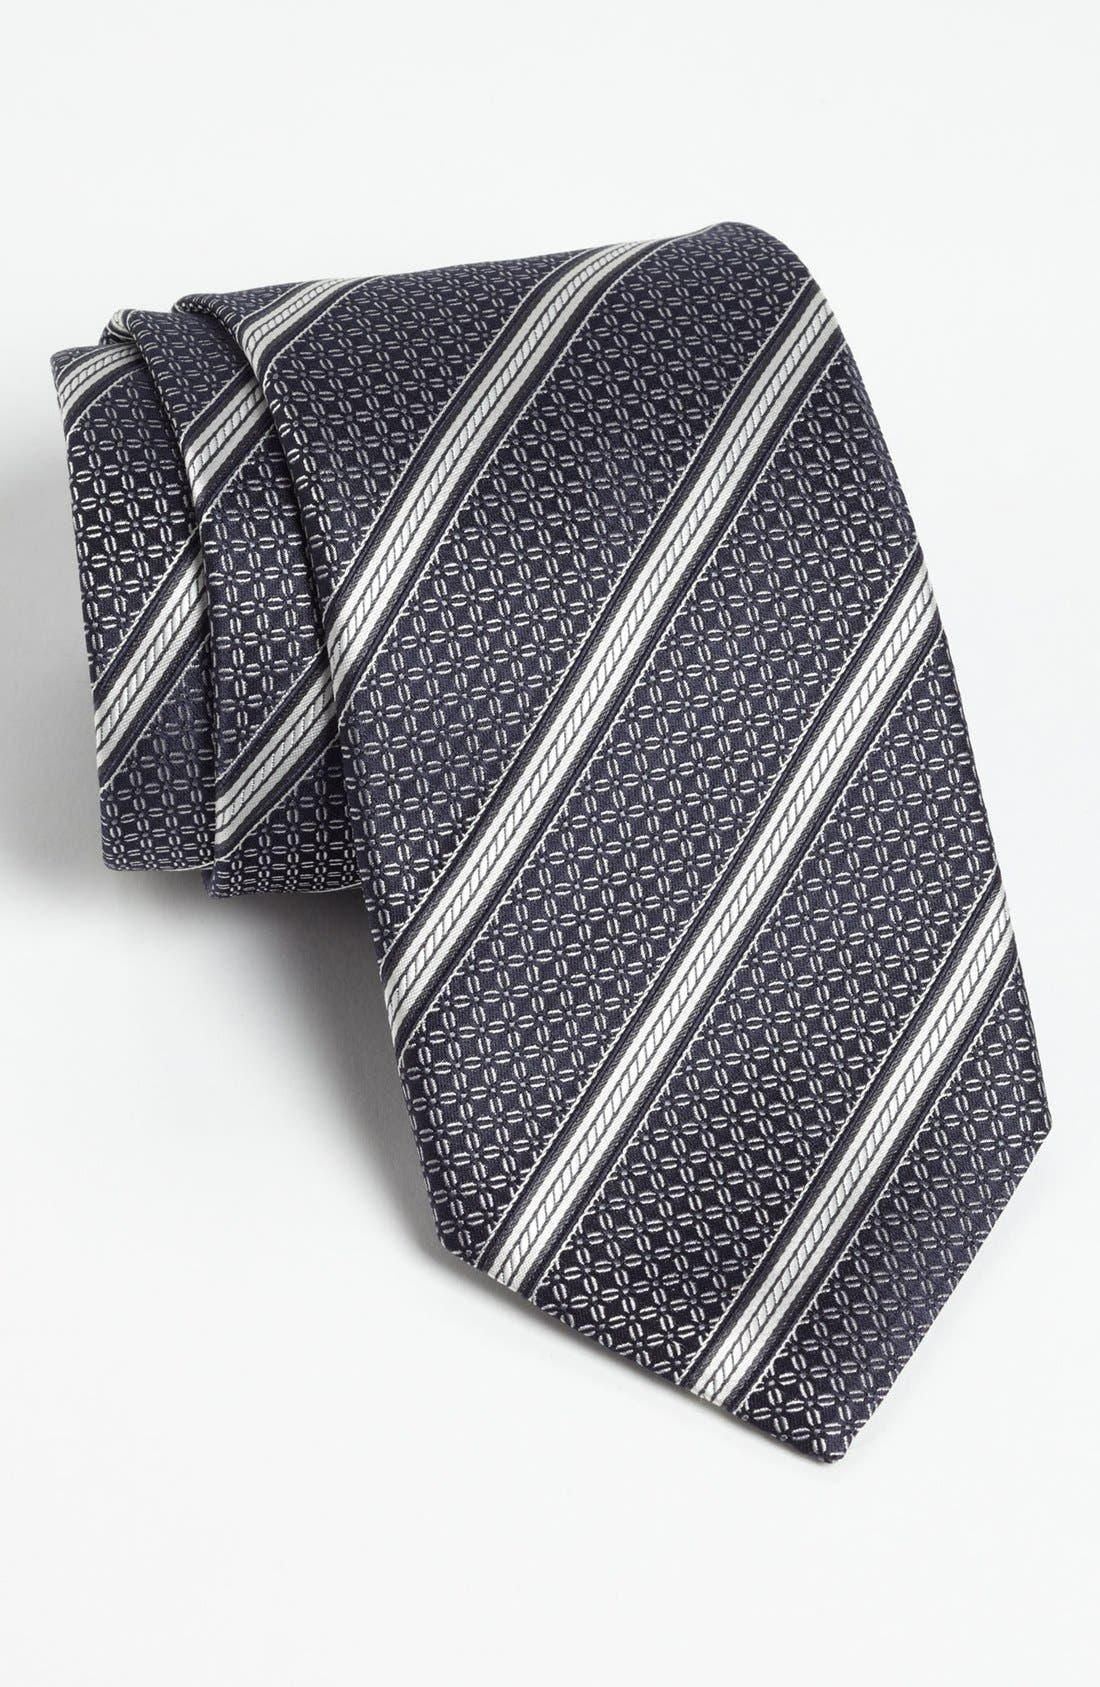 Alternate Image 1 Selected - Canali Woven Silk Tie